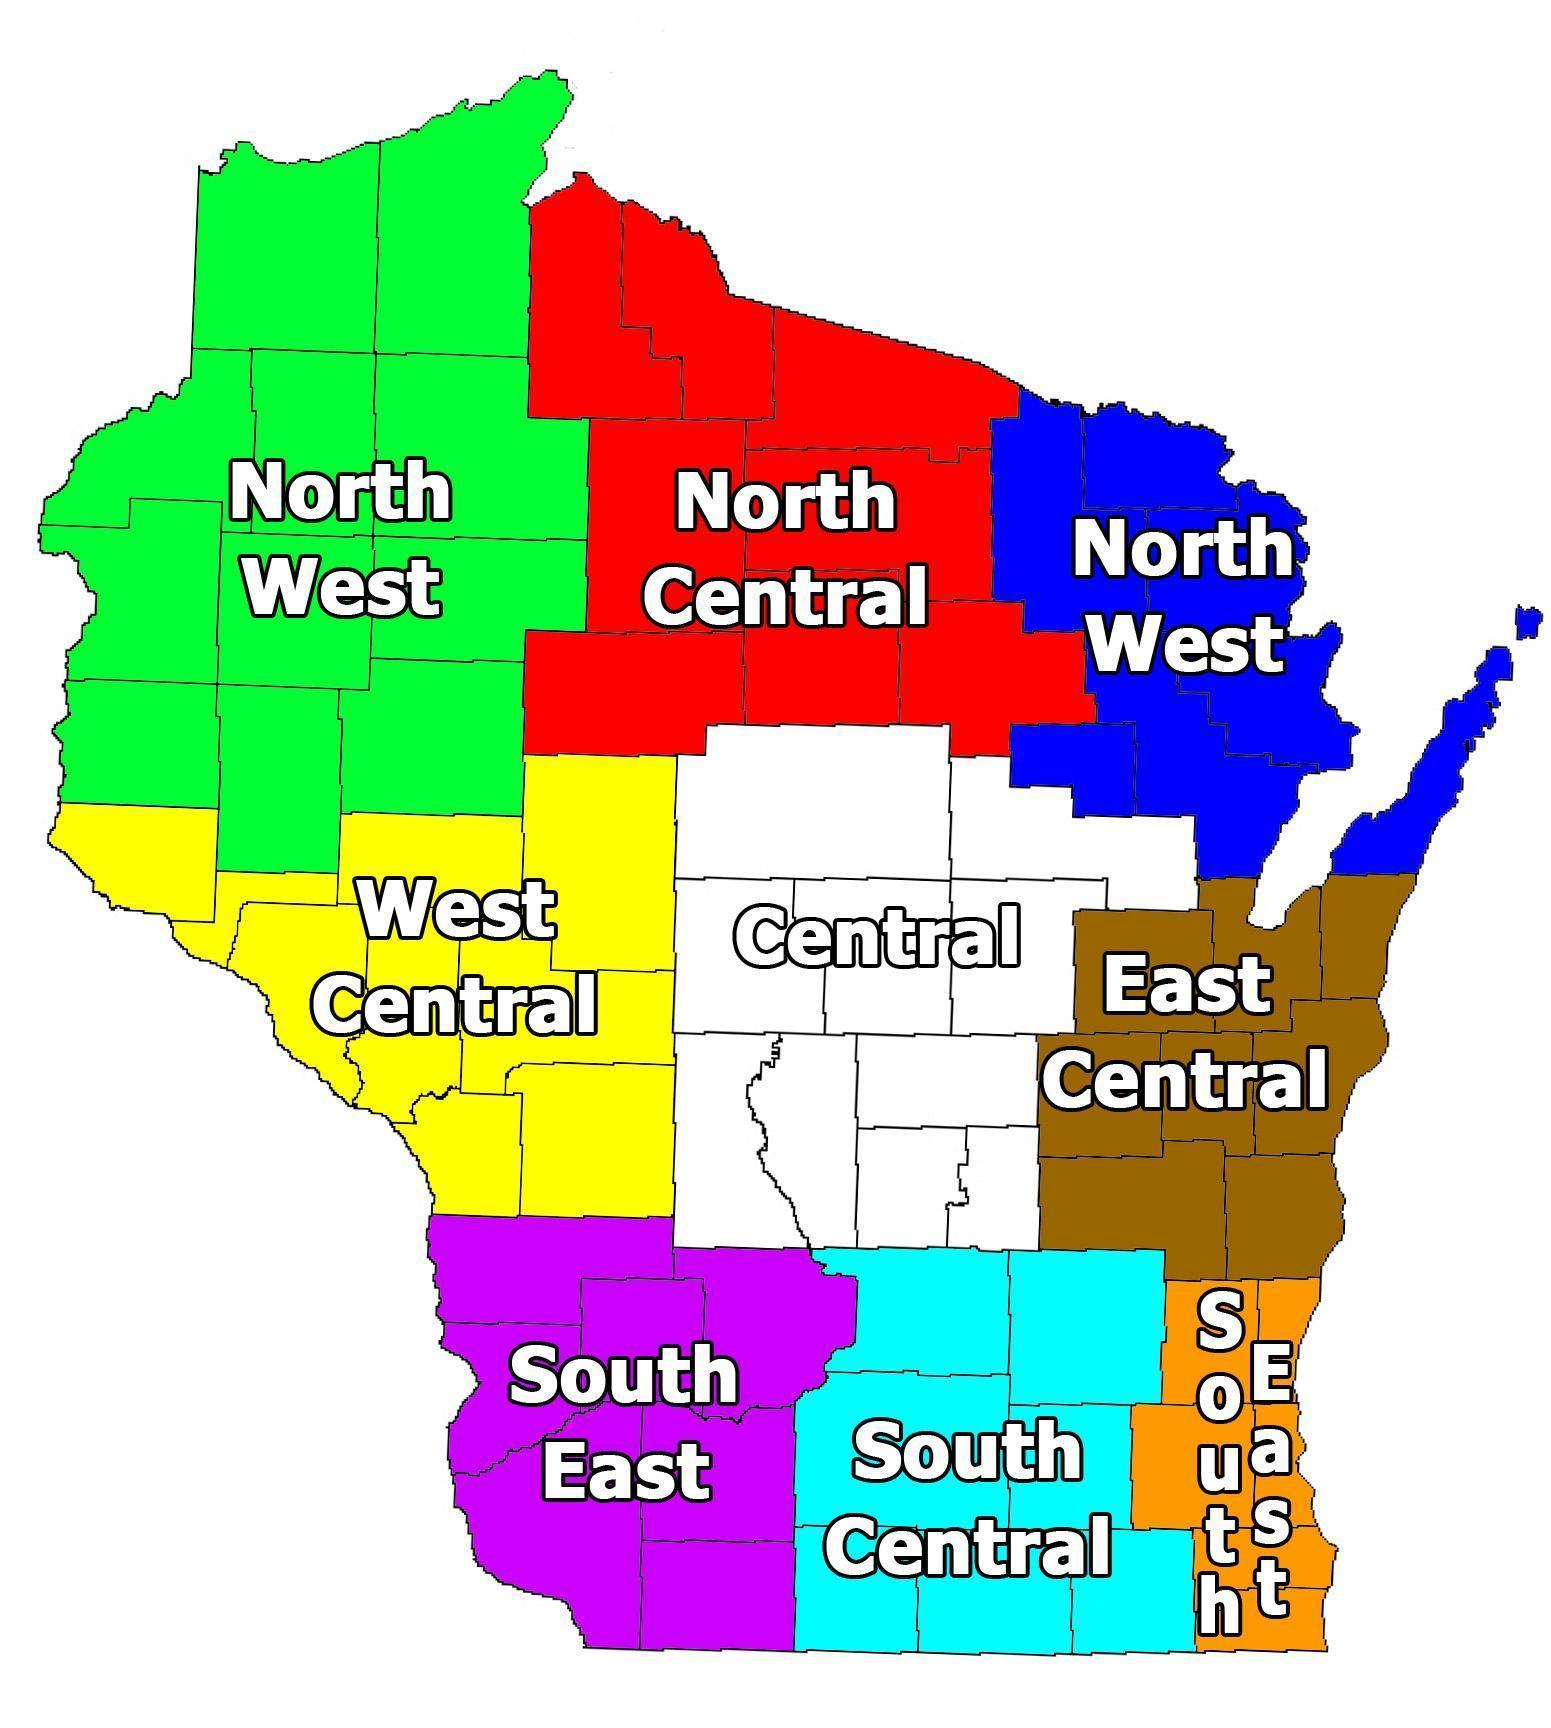 Wisconsin-Regoins Door County Wi Map on wisconsin wi map, menominee county wi map, appleton wi map, saint croix county wi map, sea caves apostle islands map, brown county wi map, de soto wi map, sturgeon bay wi map, jefferson county wi map, rome wi map, door peninsula, liberty grove wisconsin map, florence county wi map, kewaunee county wi map, adams county wi map, fish creek wi map, town of dunn wi map, fond du lac county wi map, ephraim wi map, columbia co wi map,